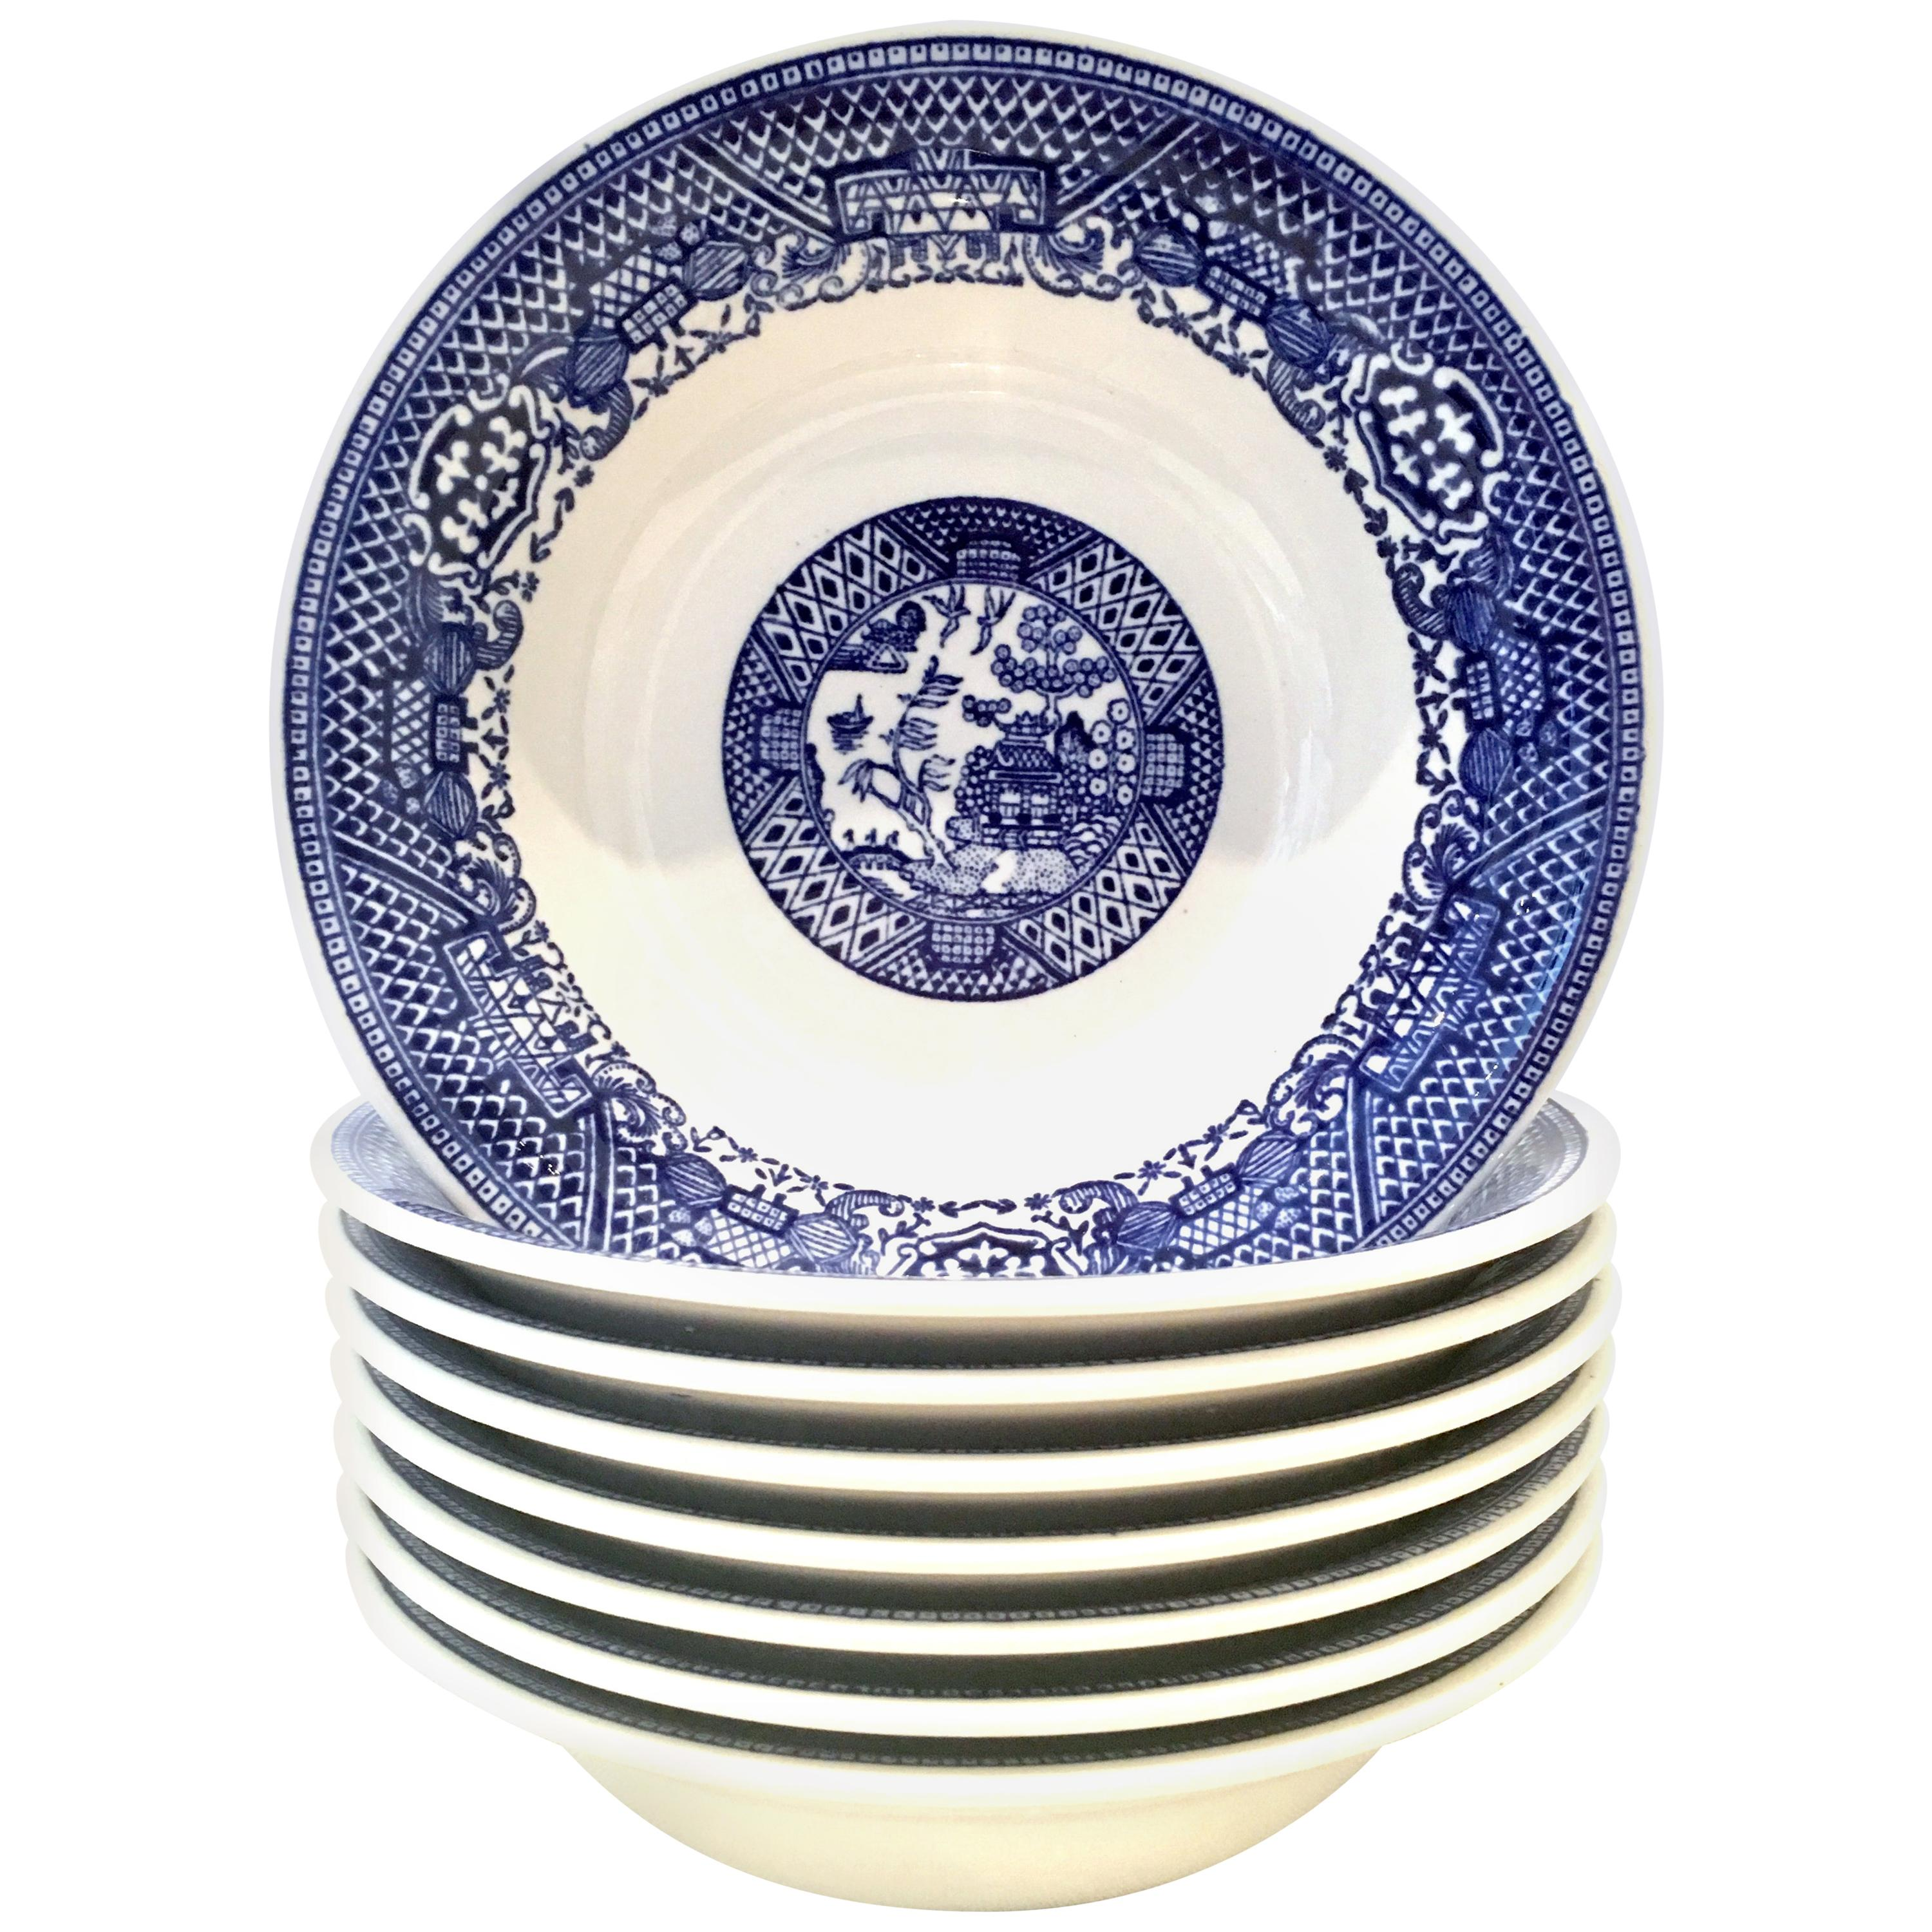 Mid-20th Century Ceramic Blue Willow Soup/Cereal Bowl, Set of 8